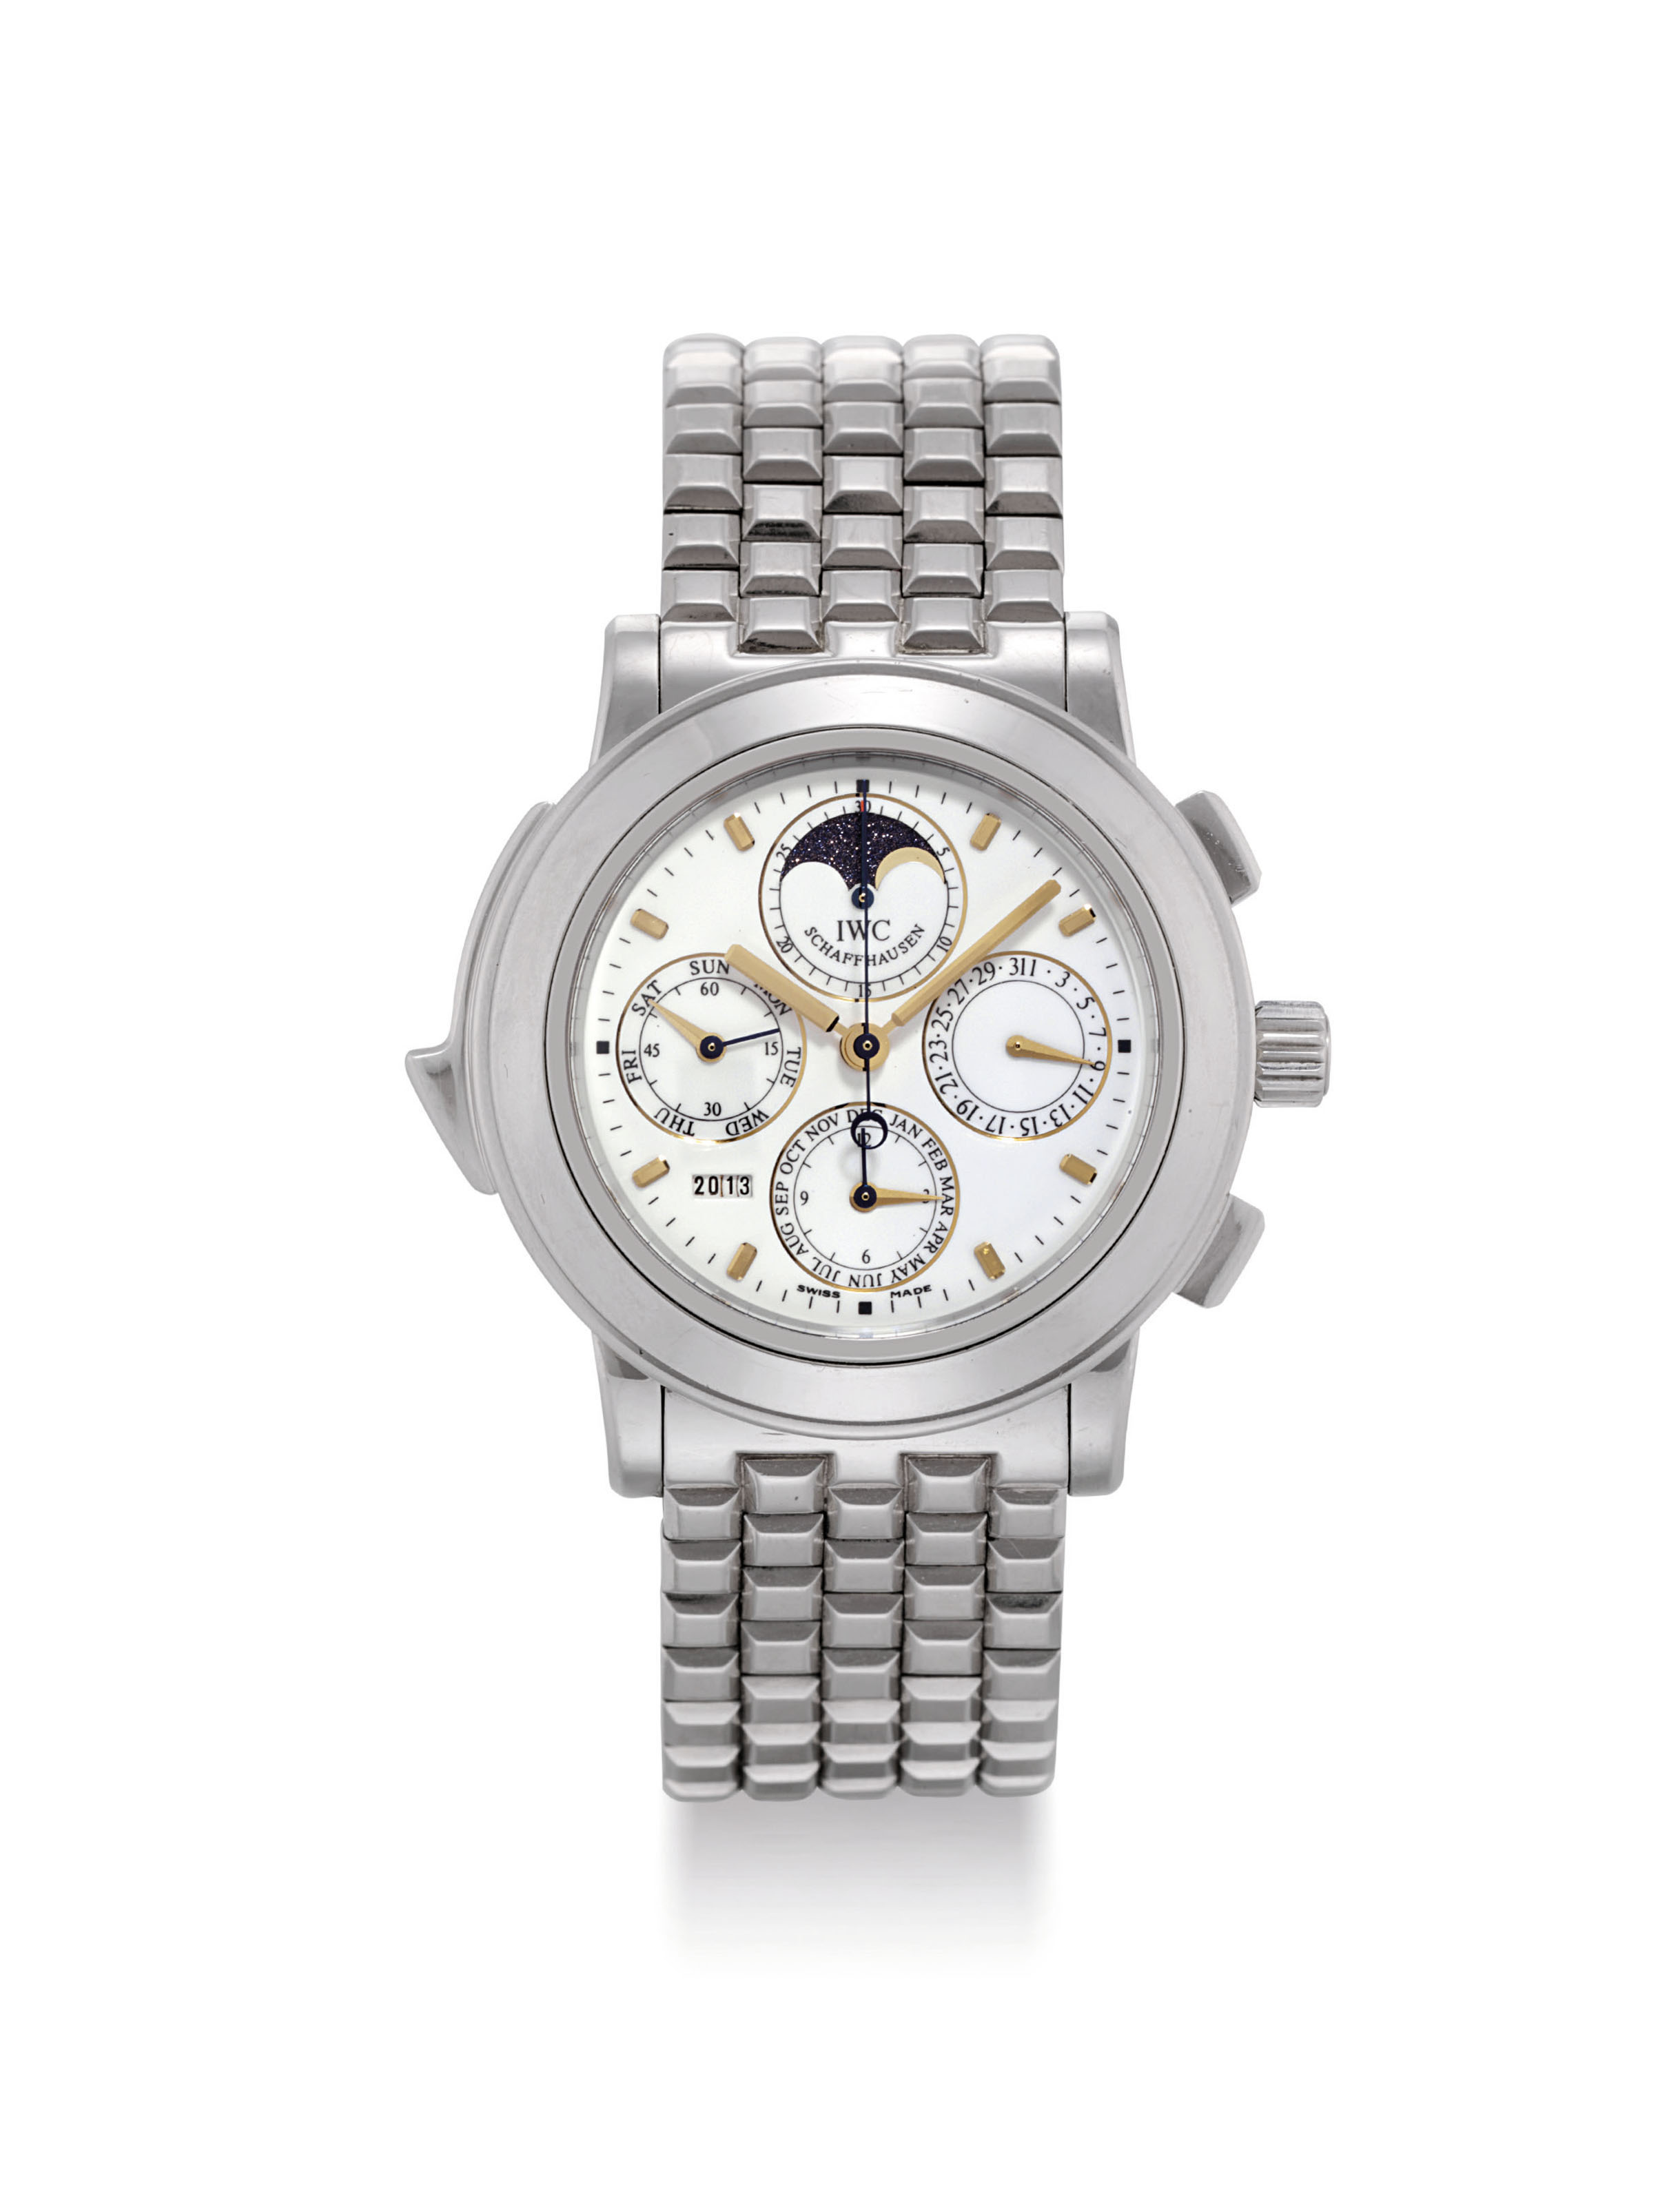 IWC. A FINE, LARGE, HEAVY AND VERY RARE PLATINUM LIMITED EDITION AUTOMATIC PERPETUAL CALENDAR MINUTE REPEATING CHRONOGRAPH WRISTWATCH WITH MOON PHASES, YEAR DISPLAY AND HEAVY PLATINUM BRACELET